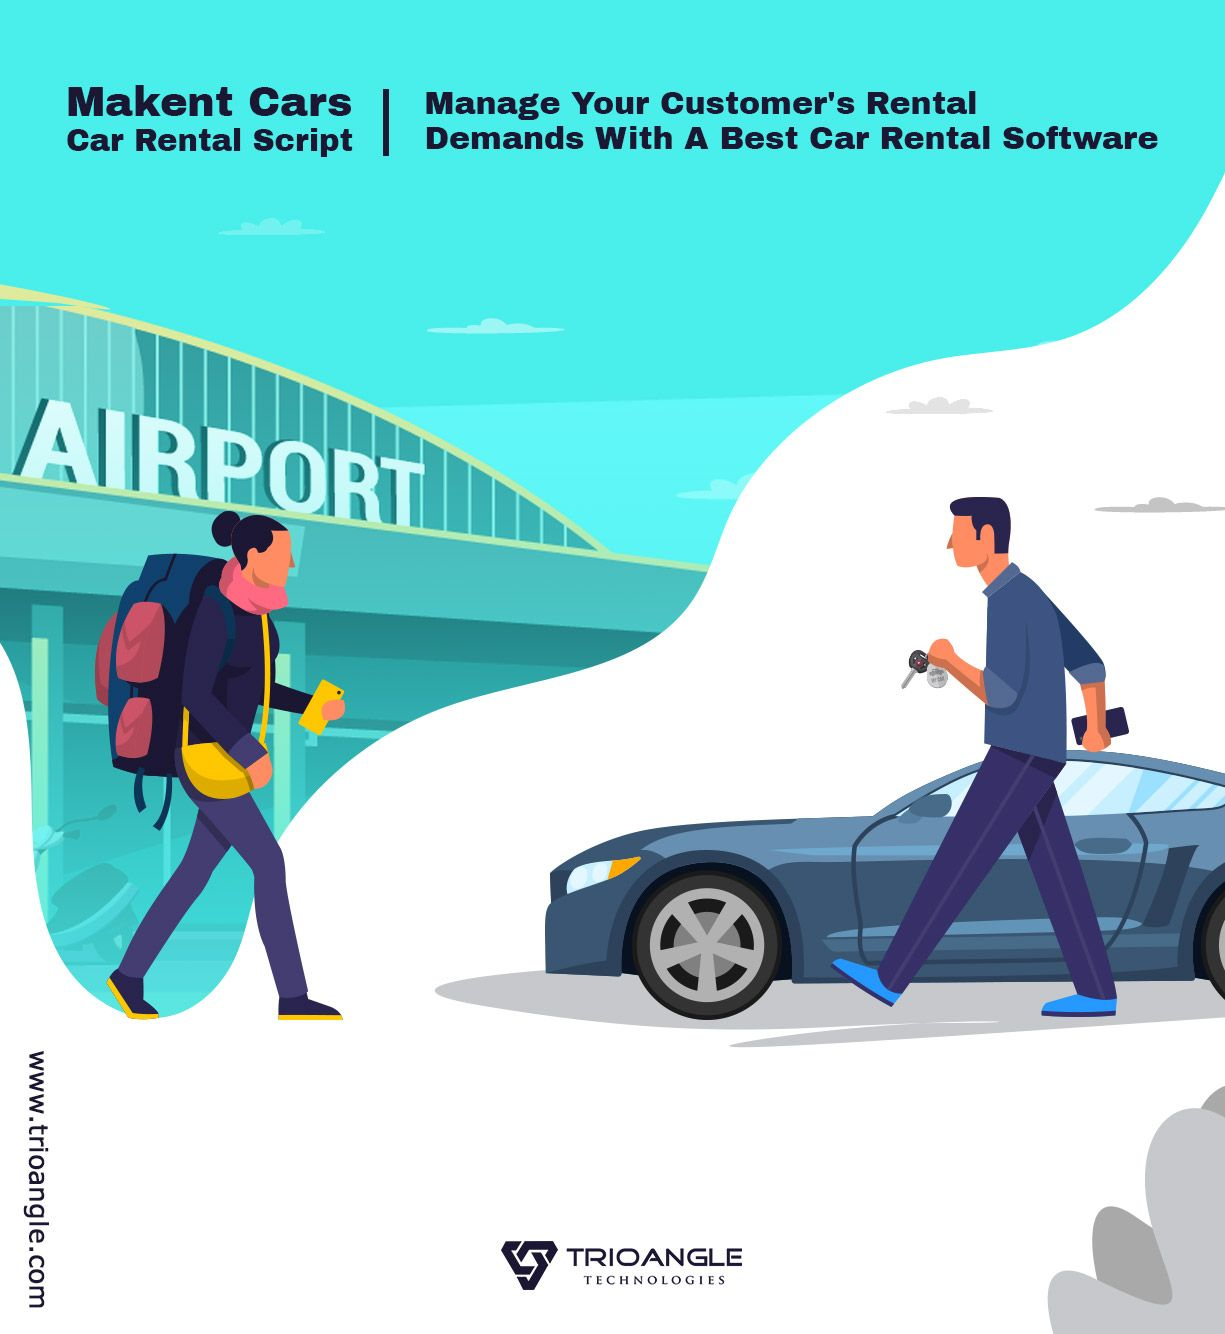 Airbnb For Car | Trioangle MakentCars - Airbnb for cars | Car rental